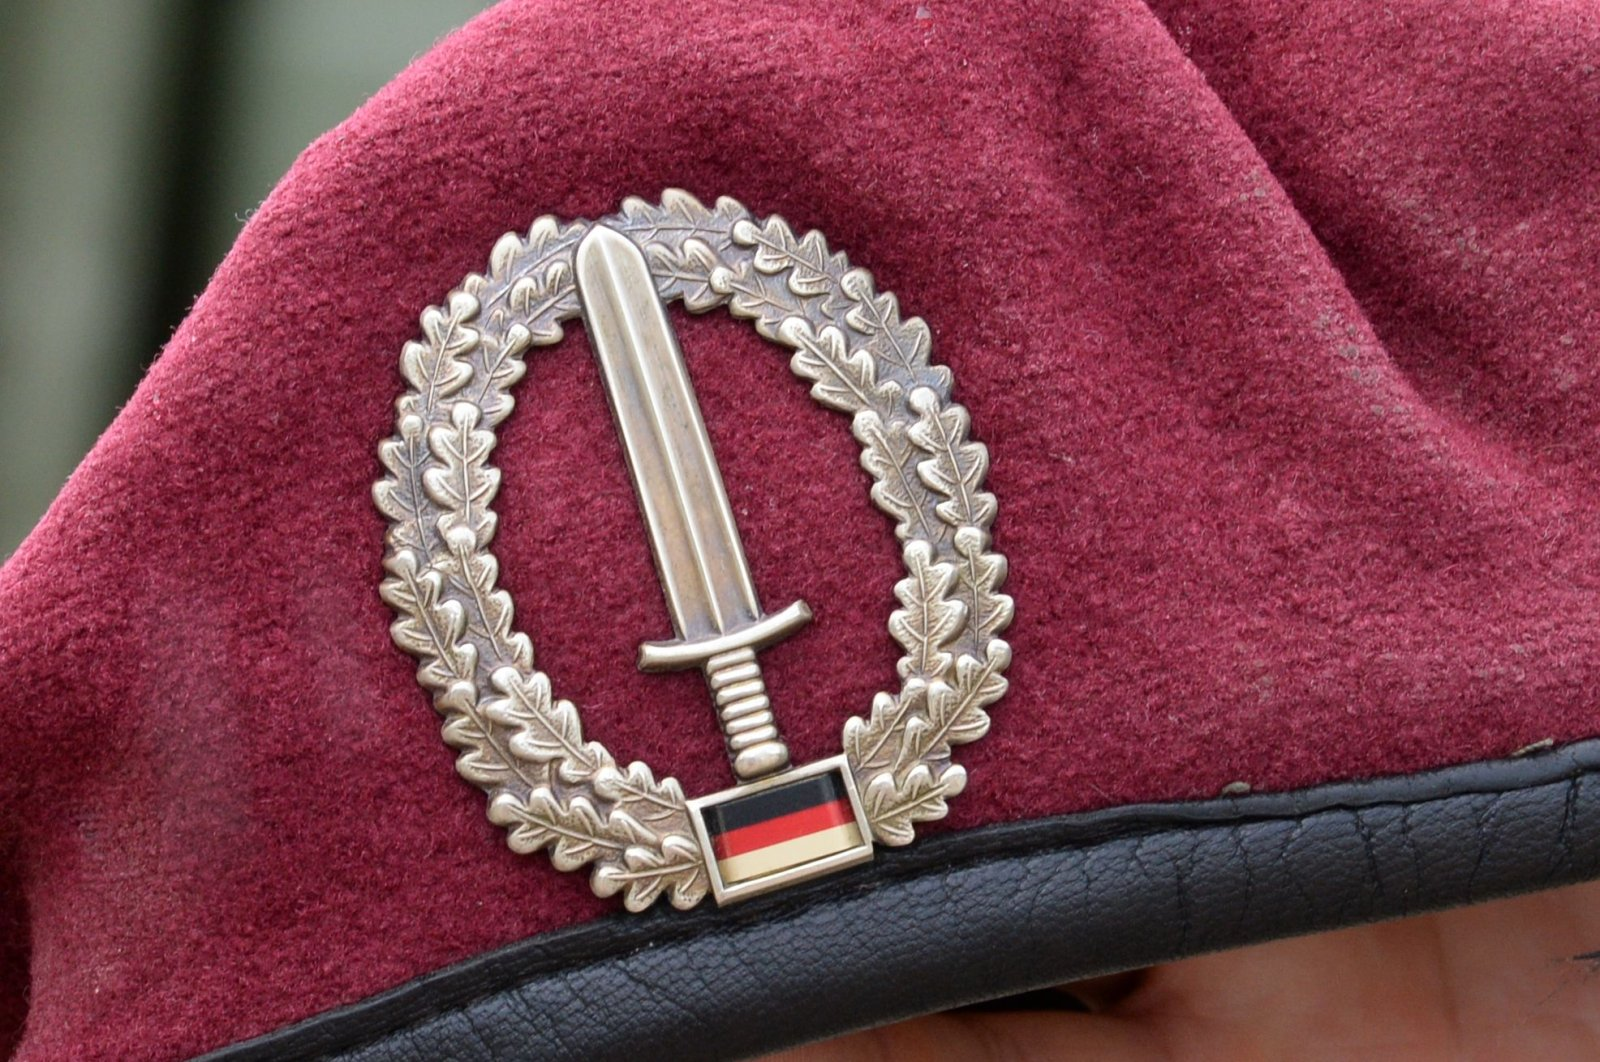 Picture taken on July 14, 2014 shows the emblem of the KSK (Kommando Spezialkraefte) special unit of Germany's armed forces Bundeswehr seen on the beret of a soldier taking part in a military exercise in Calw near Sindelfingen, southern Germany. (AFP Photo)